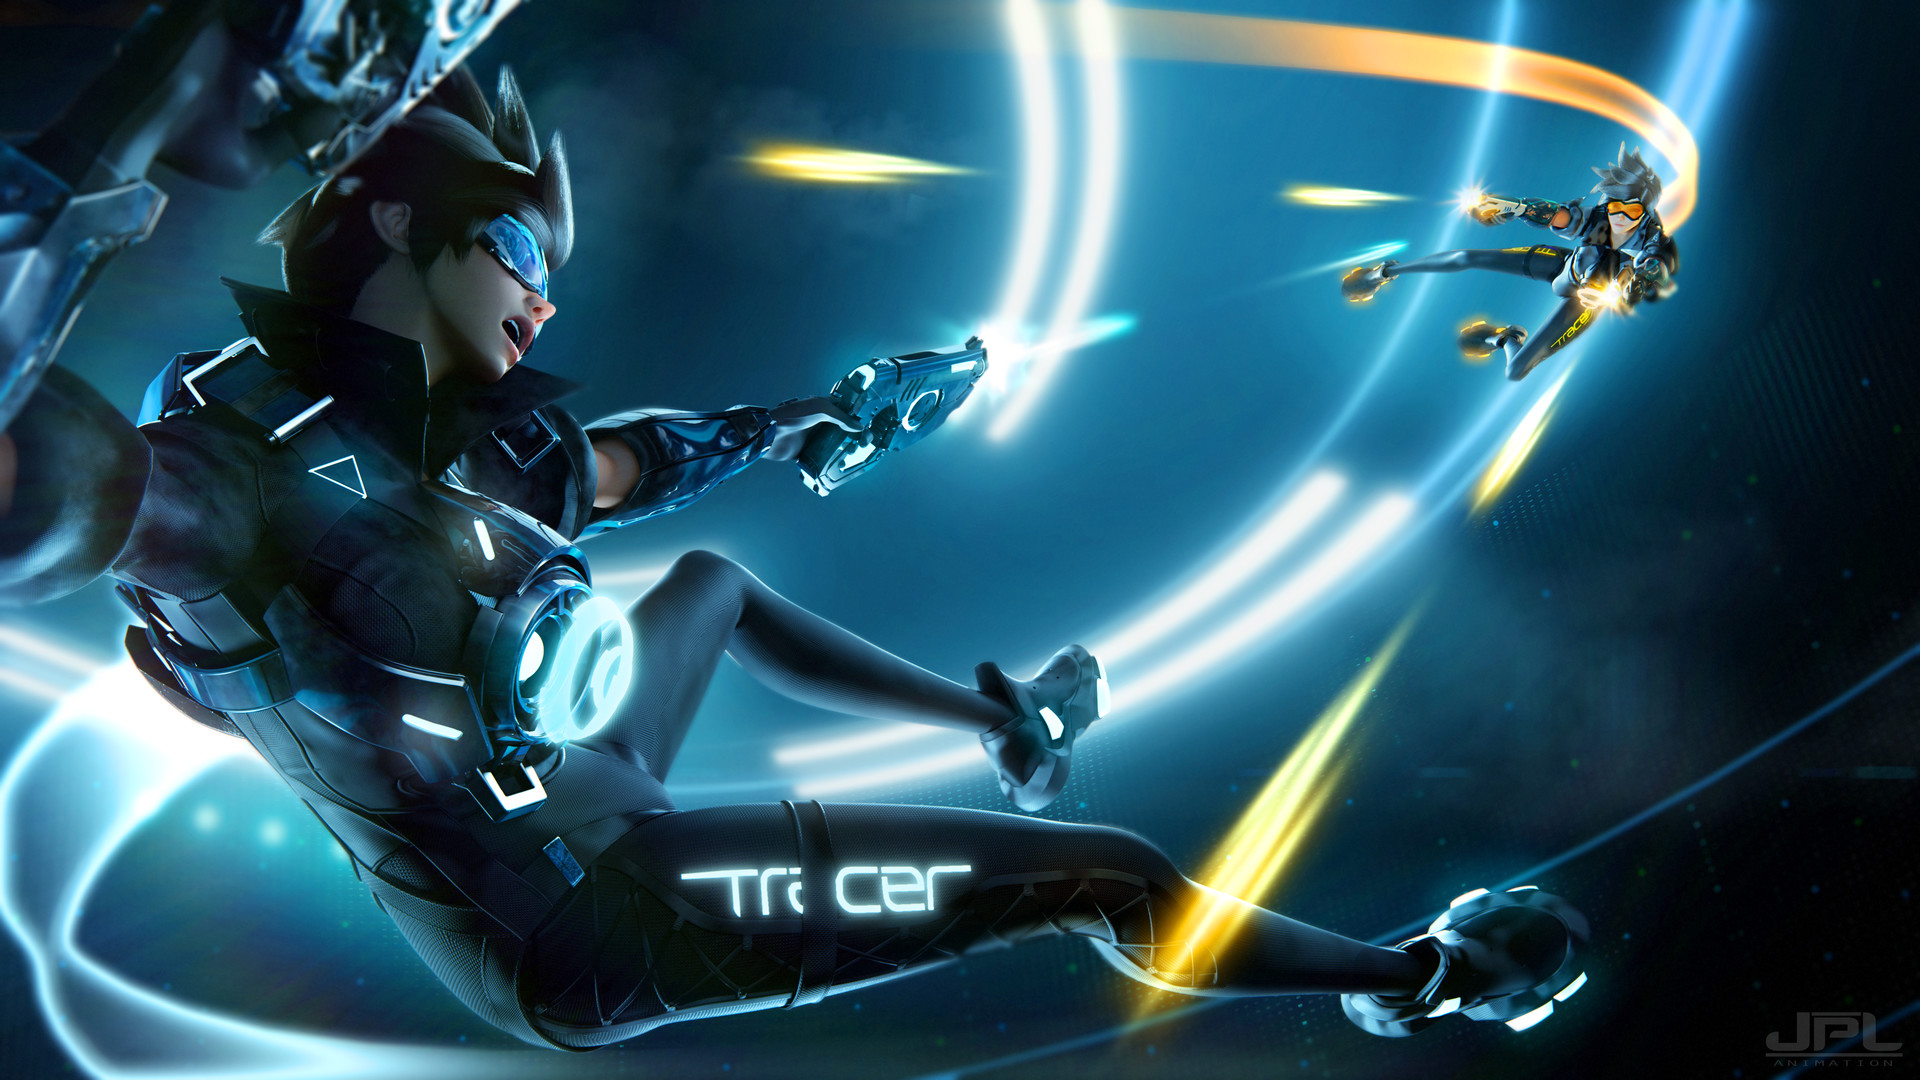 Tracer Tron HD Wallpaper | Background Image | 1920x1080 ...